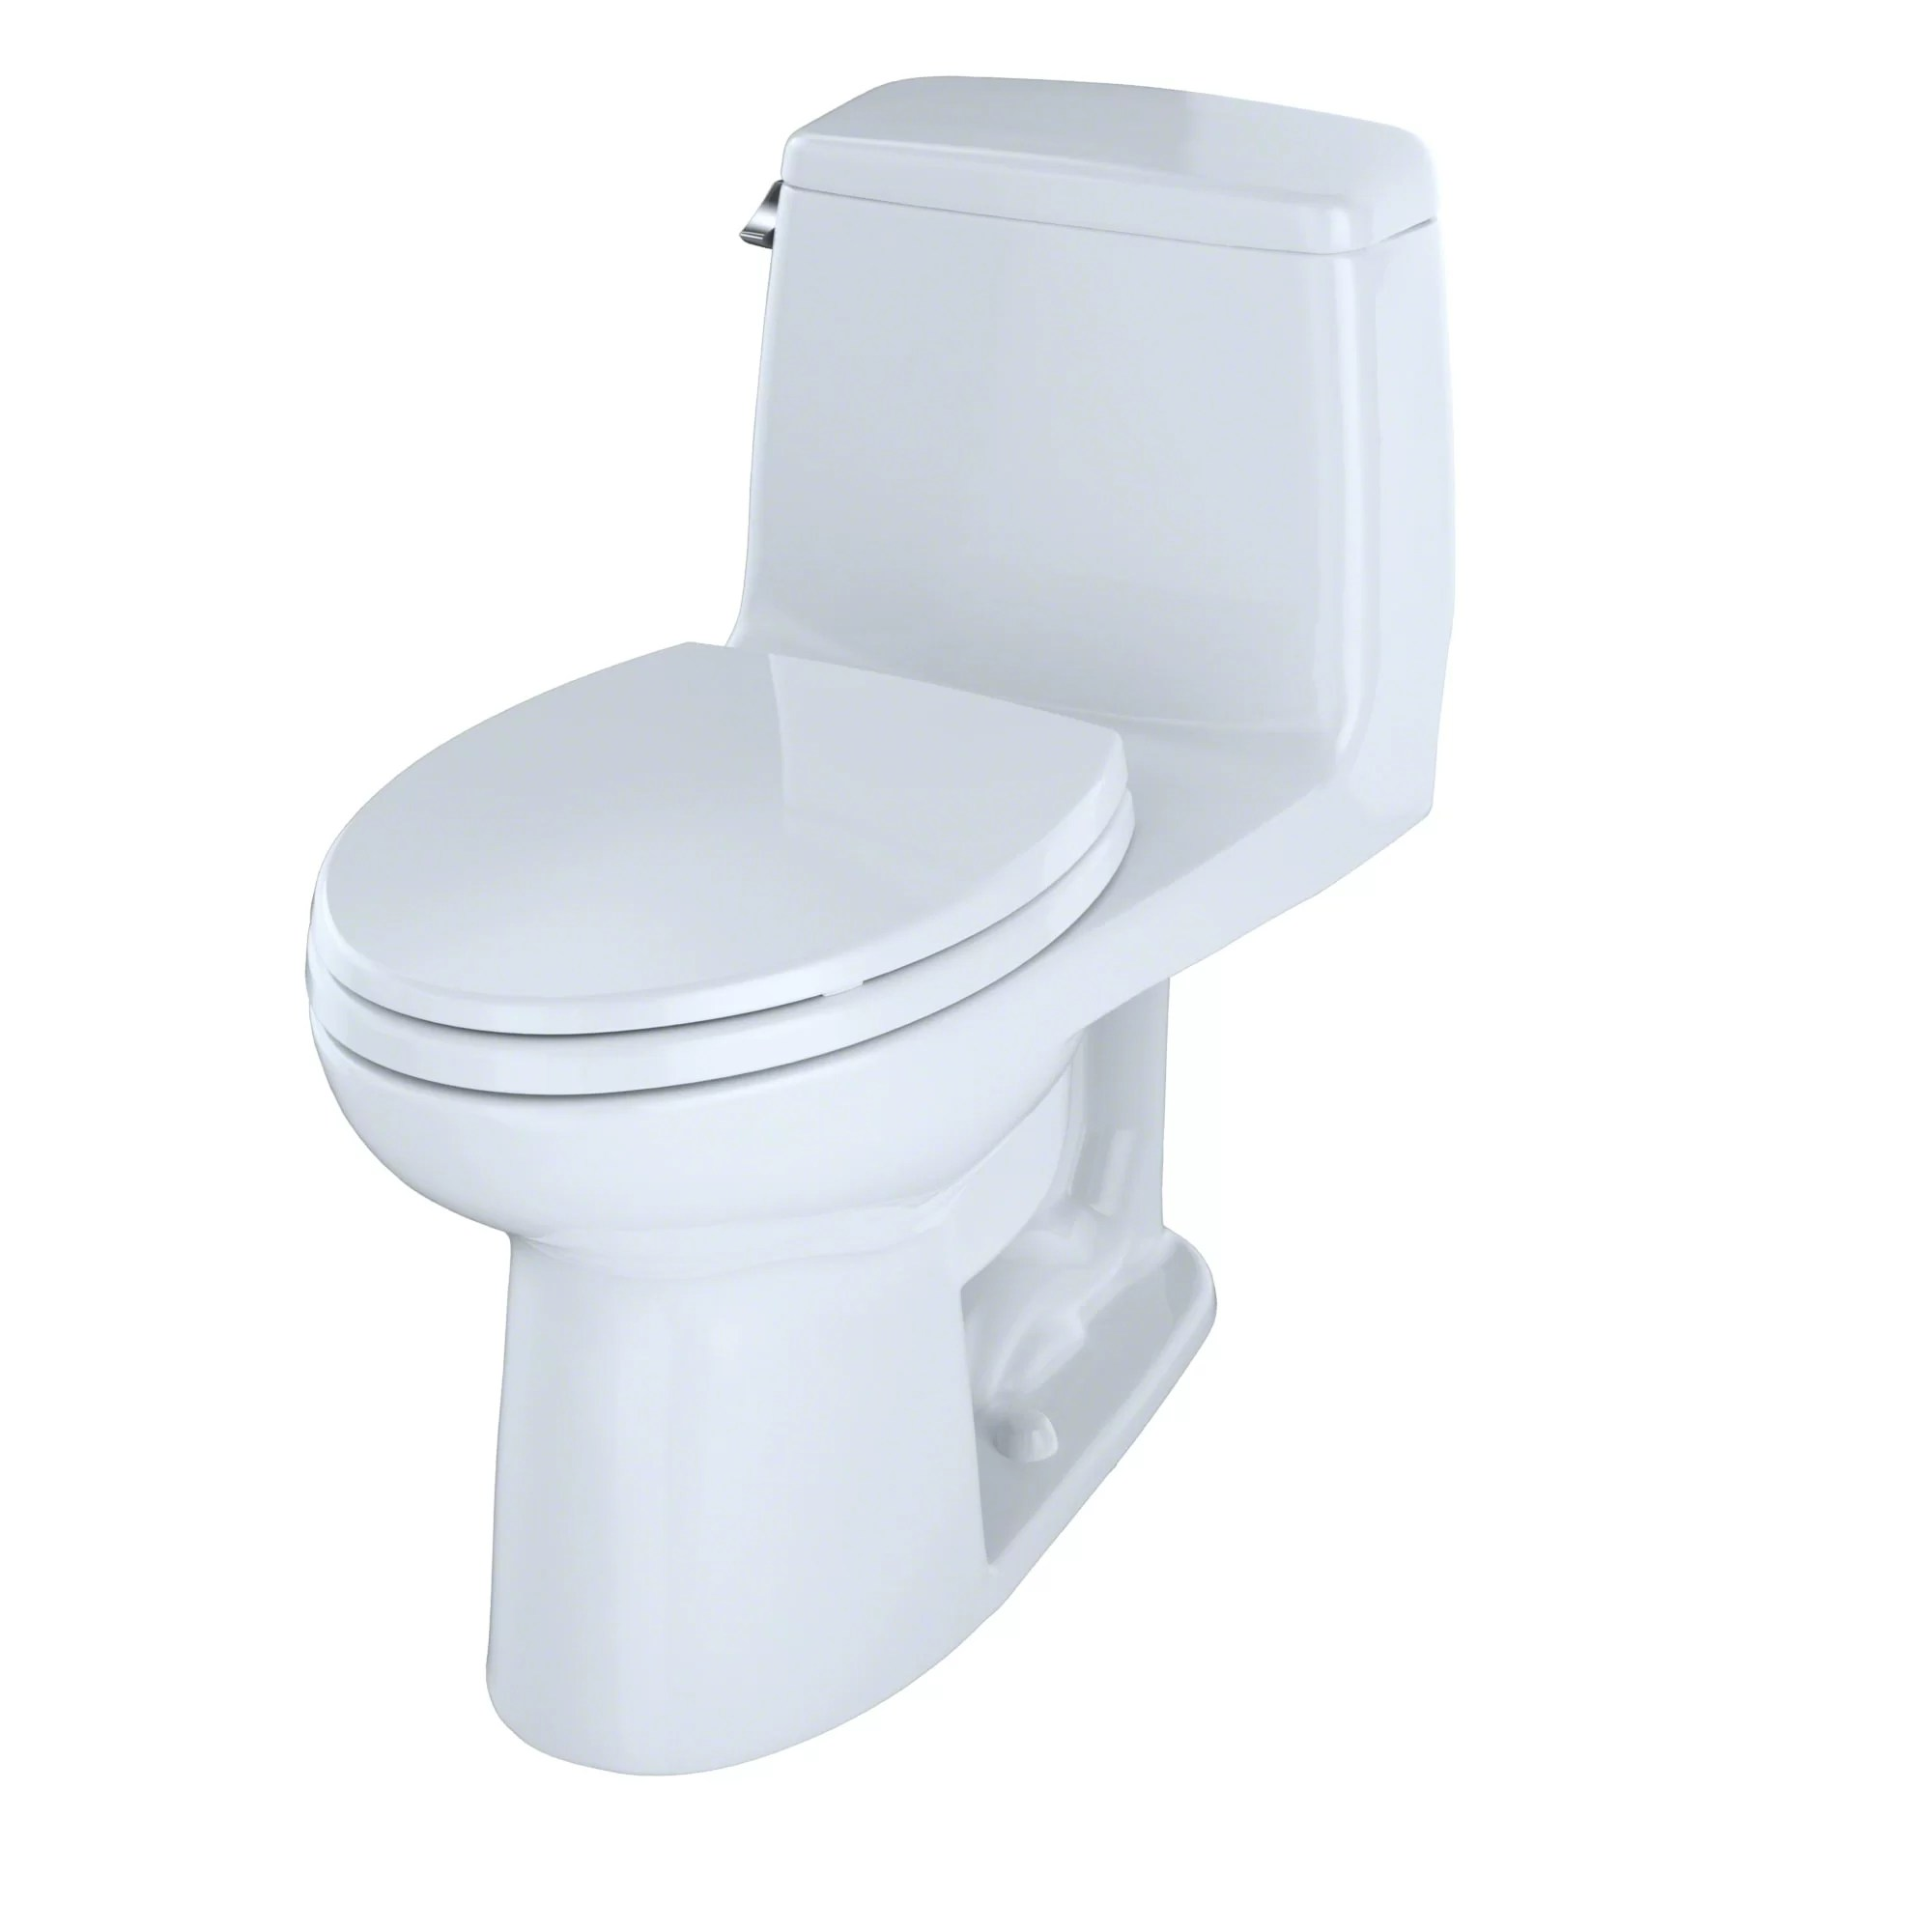 Toilette Toto Ultimate Power Gravity Low Consumption 1 6 Gpf Elongated One Piece Toilet Seat Included